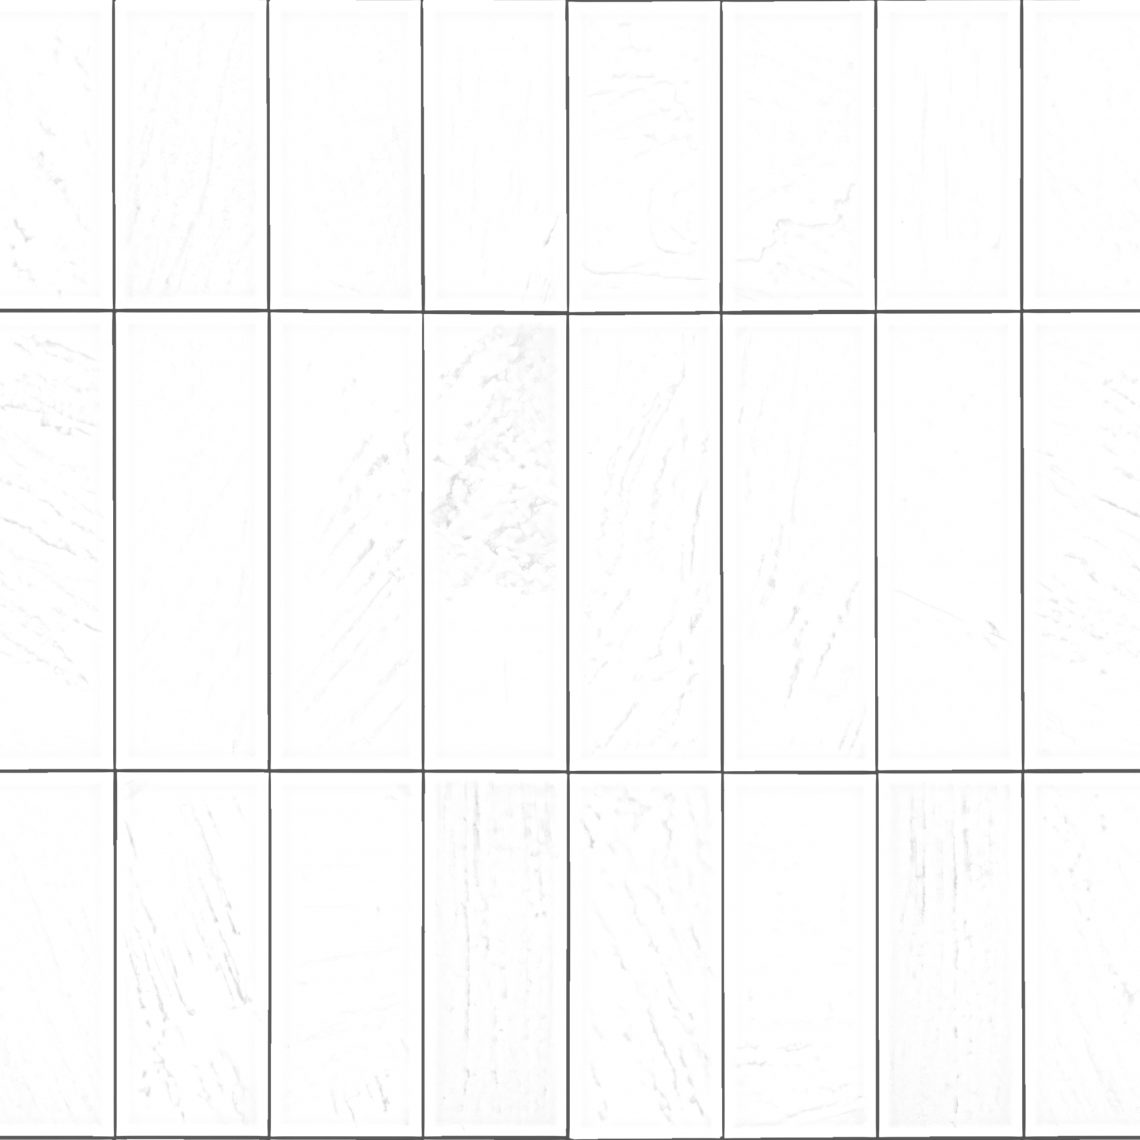 Simple-Tiles-07-Ambient-Occlusion